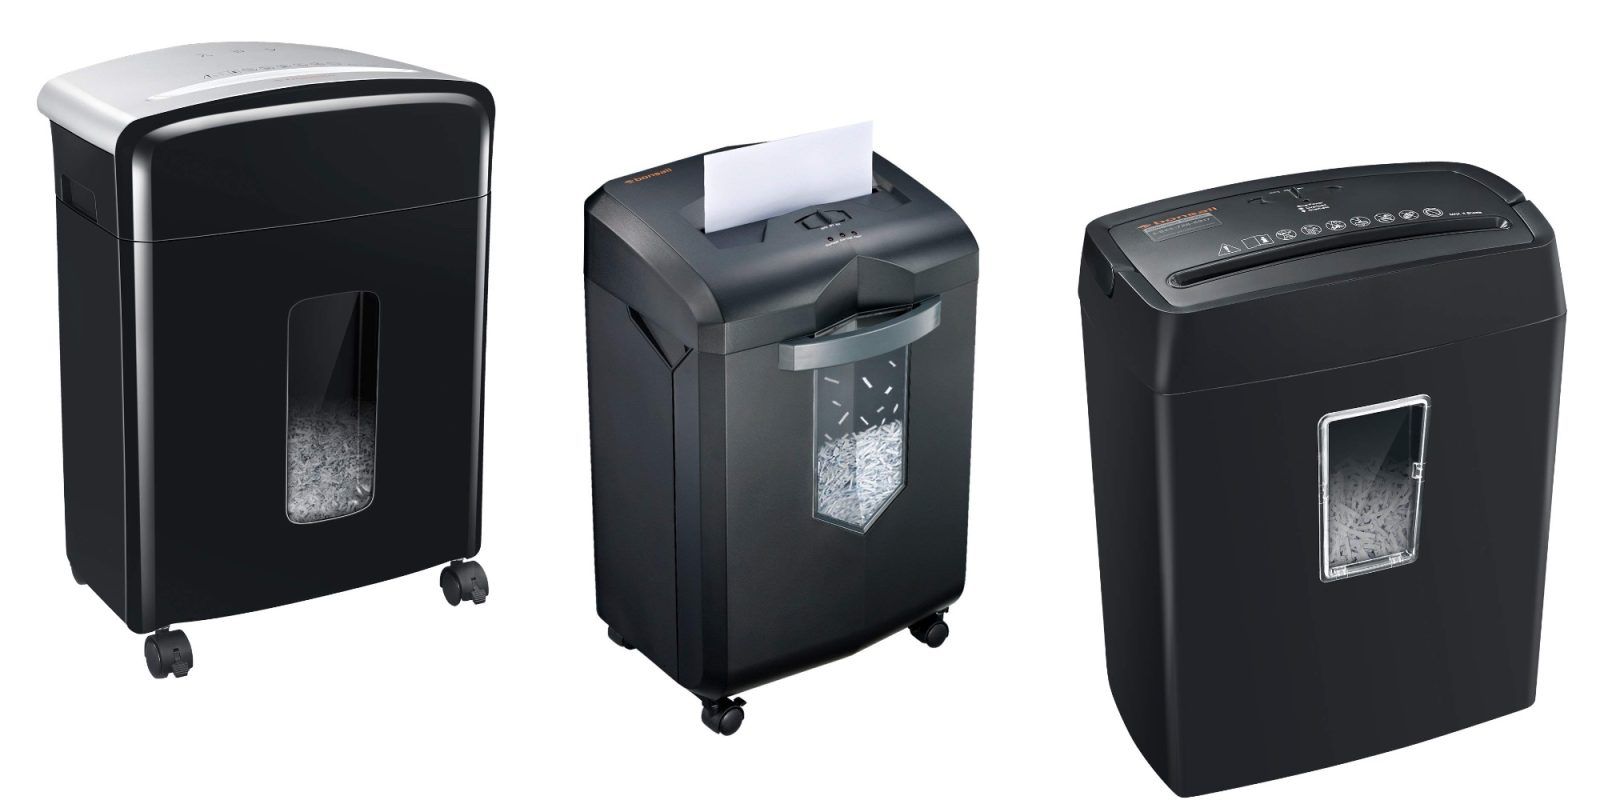 Bring a new highly-rated paper shredder to your office with deals from $24.50